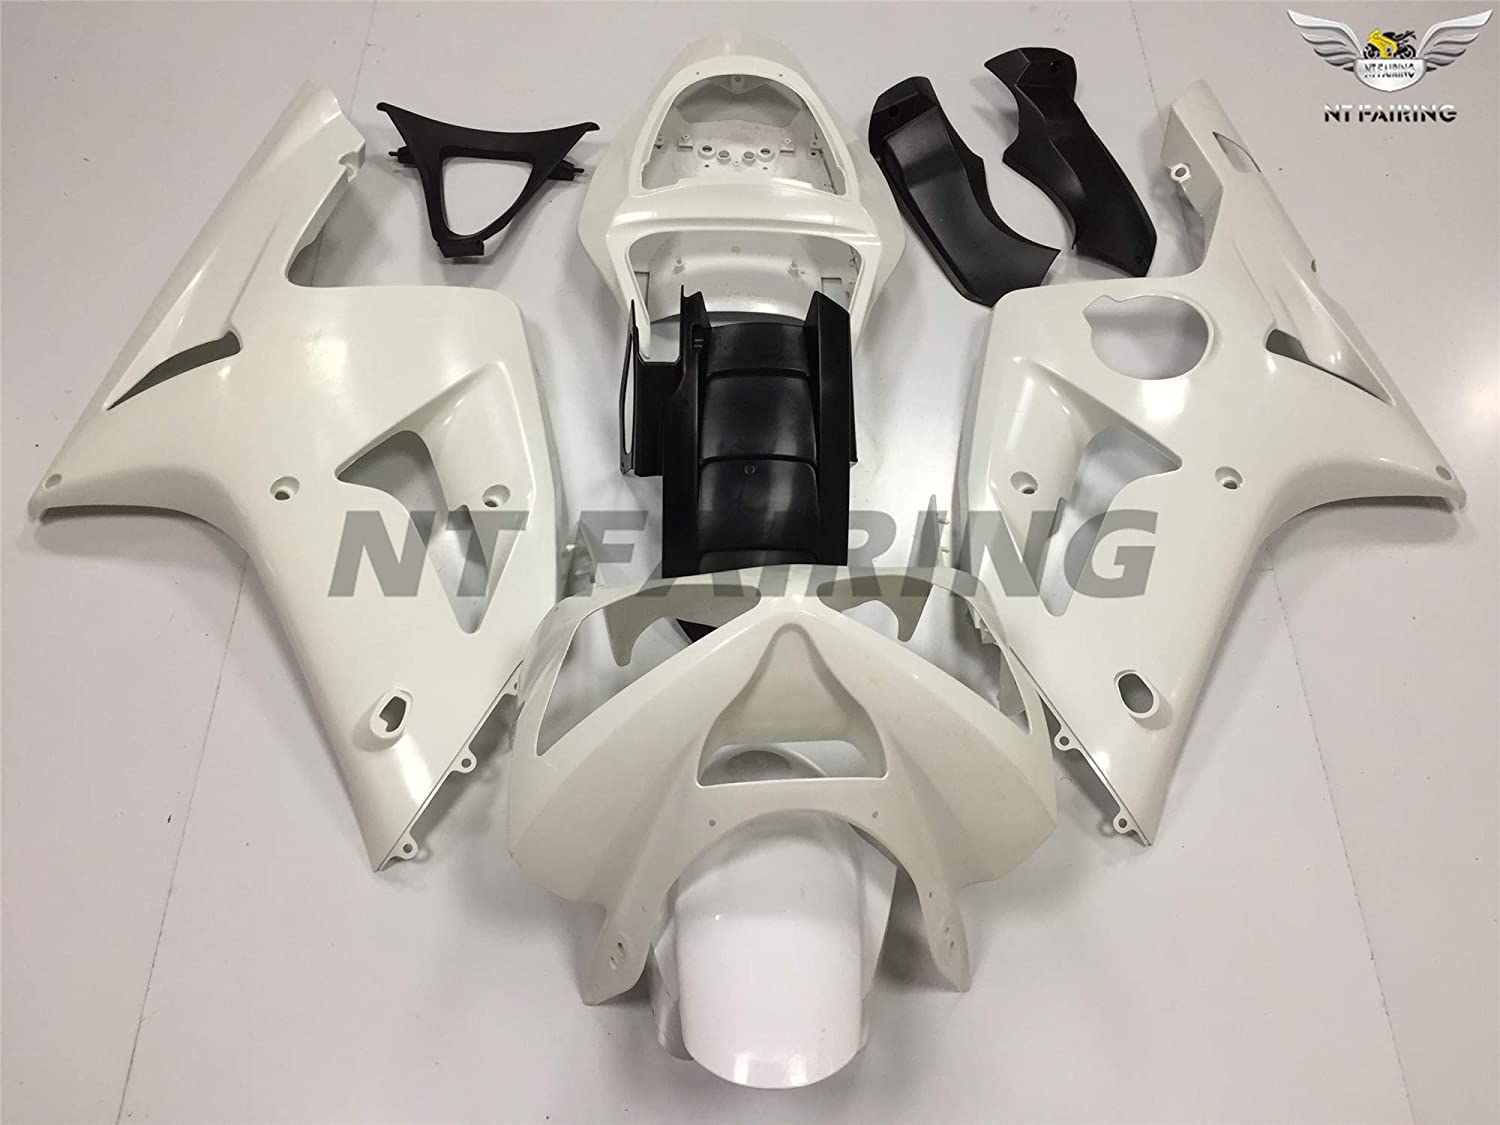 NT FAIRING Fit for Kawasaki Ninja 2006 2007 ZX10R Injection Mold Fairing Kit Unpainted Bodywork Plastic Bodyframe 06 07